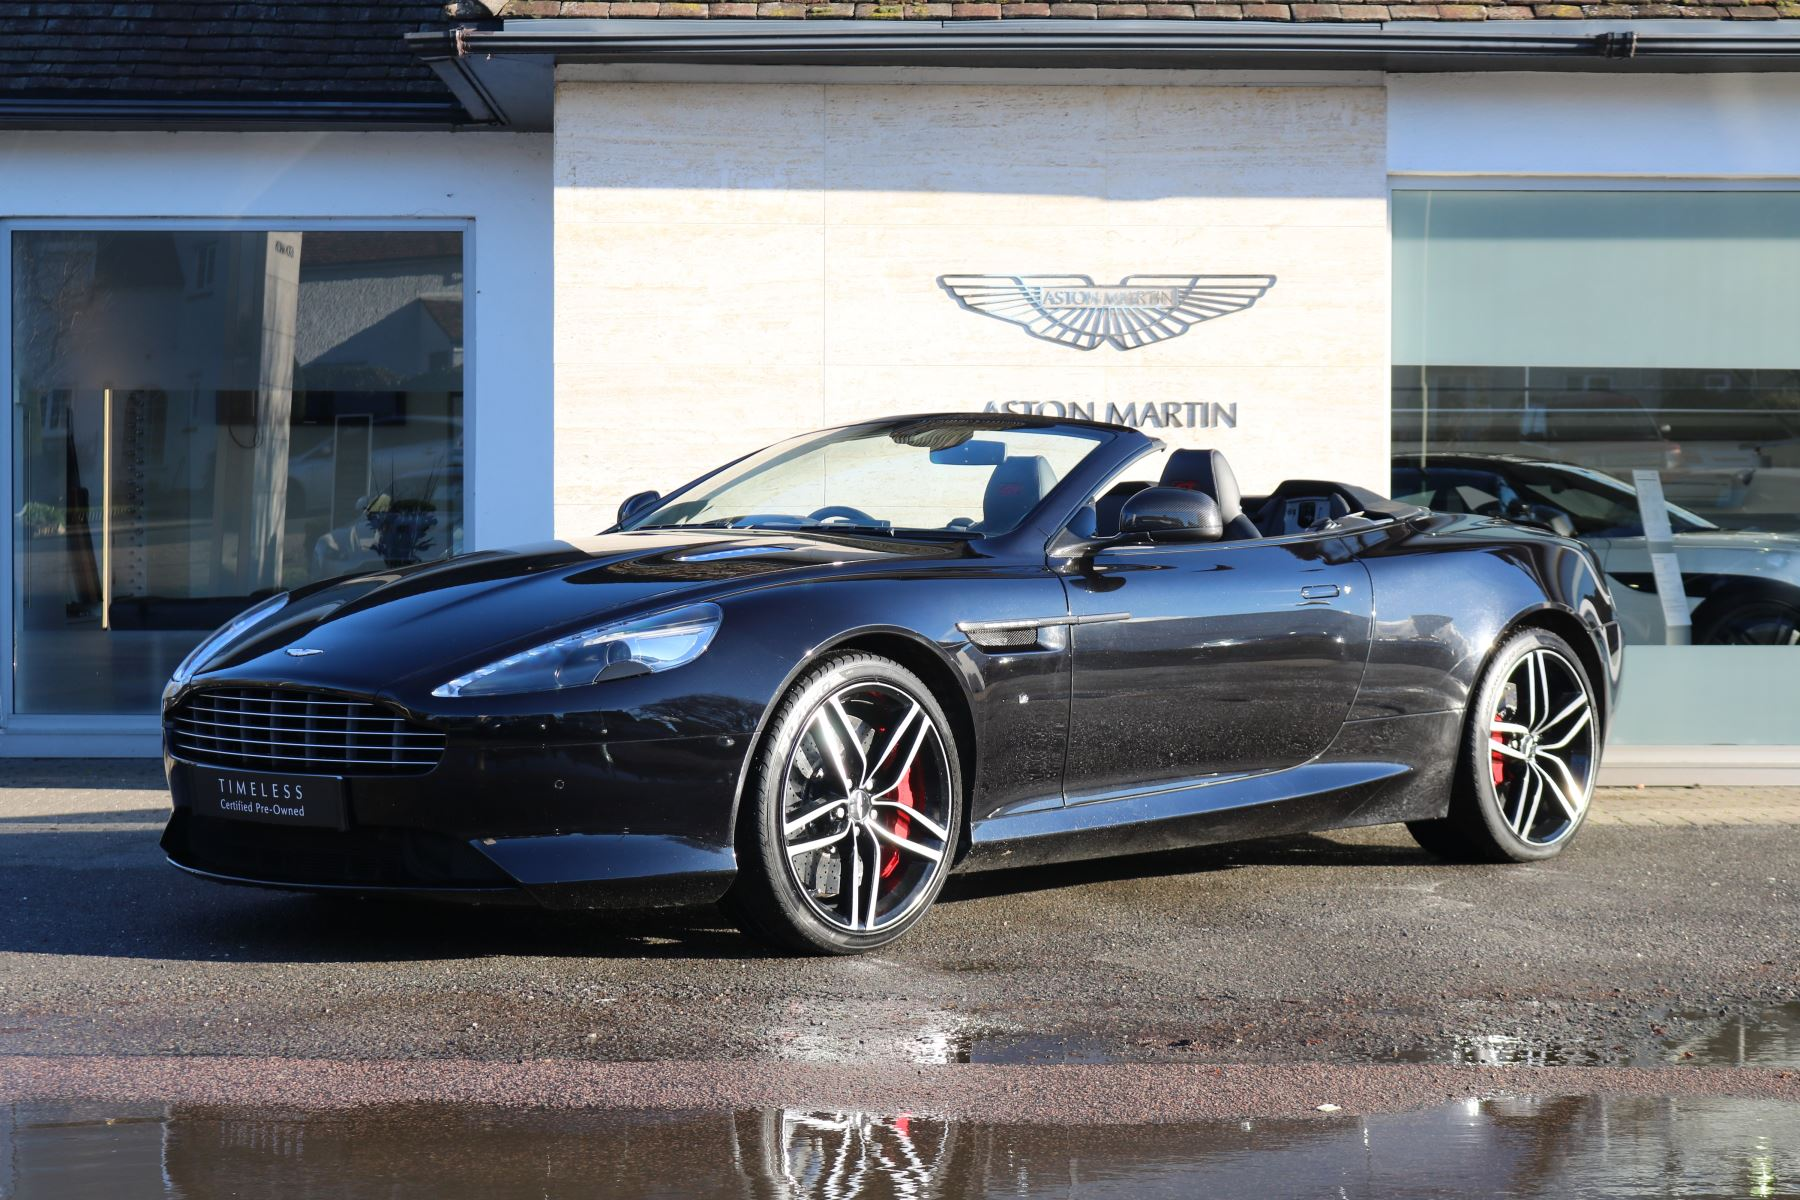 Used Aston Martin Db9 Black Cars For Sale Grange